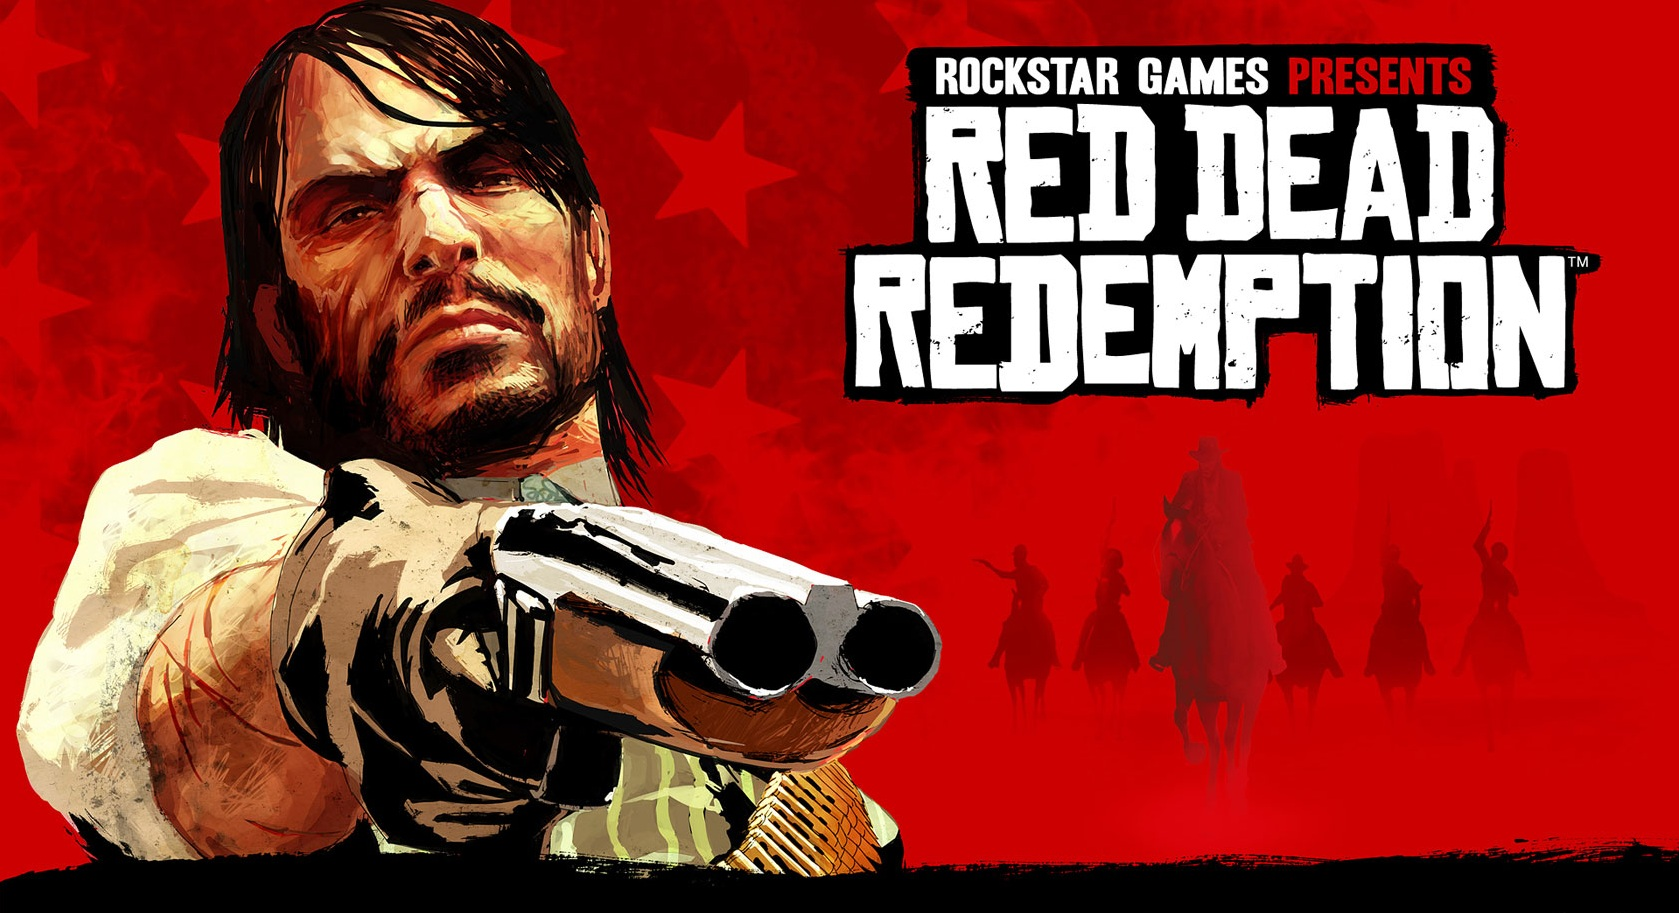 are-you-serious-remastered-red-dead-redemption-for-xbox-one-is-coming